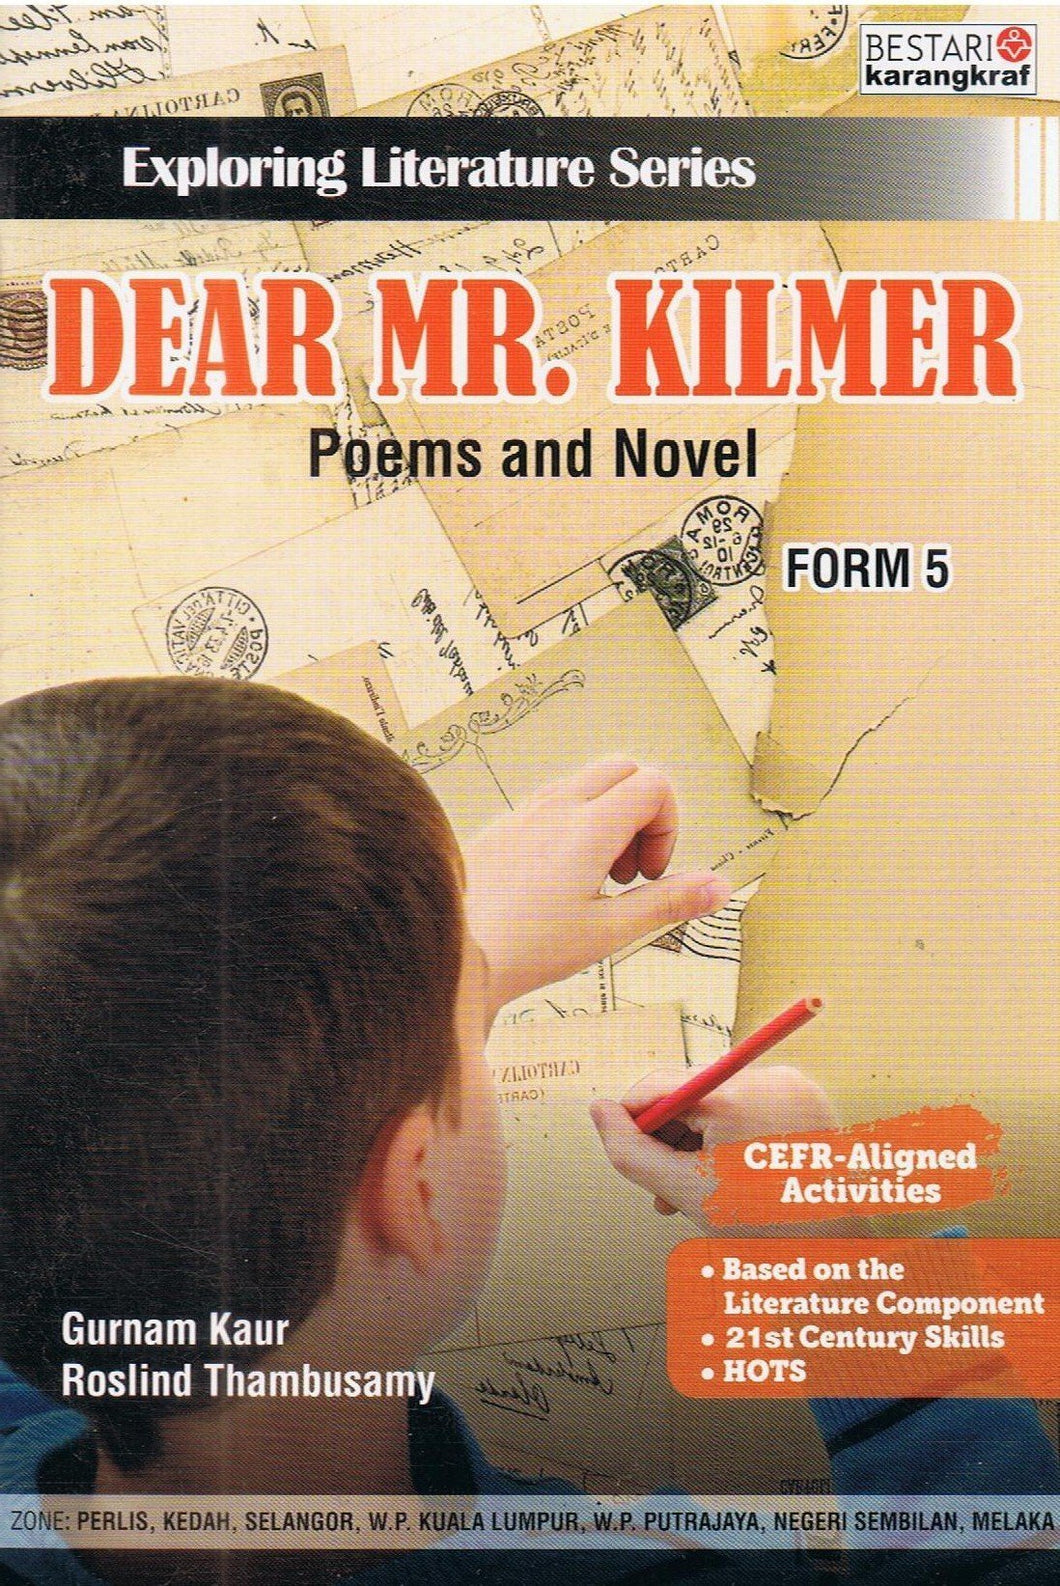 Bestari Karangkraf-Exploring Literature Series: Dear Mr. Kilmer Poems And Novel-9789674741853-BukuDBP.com